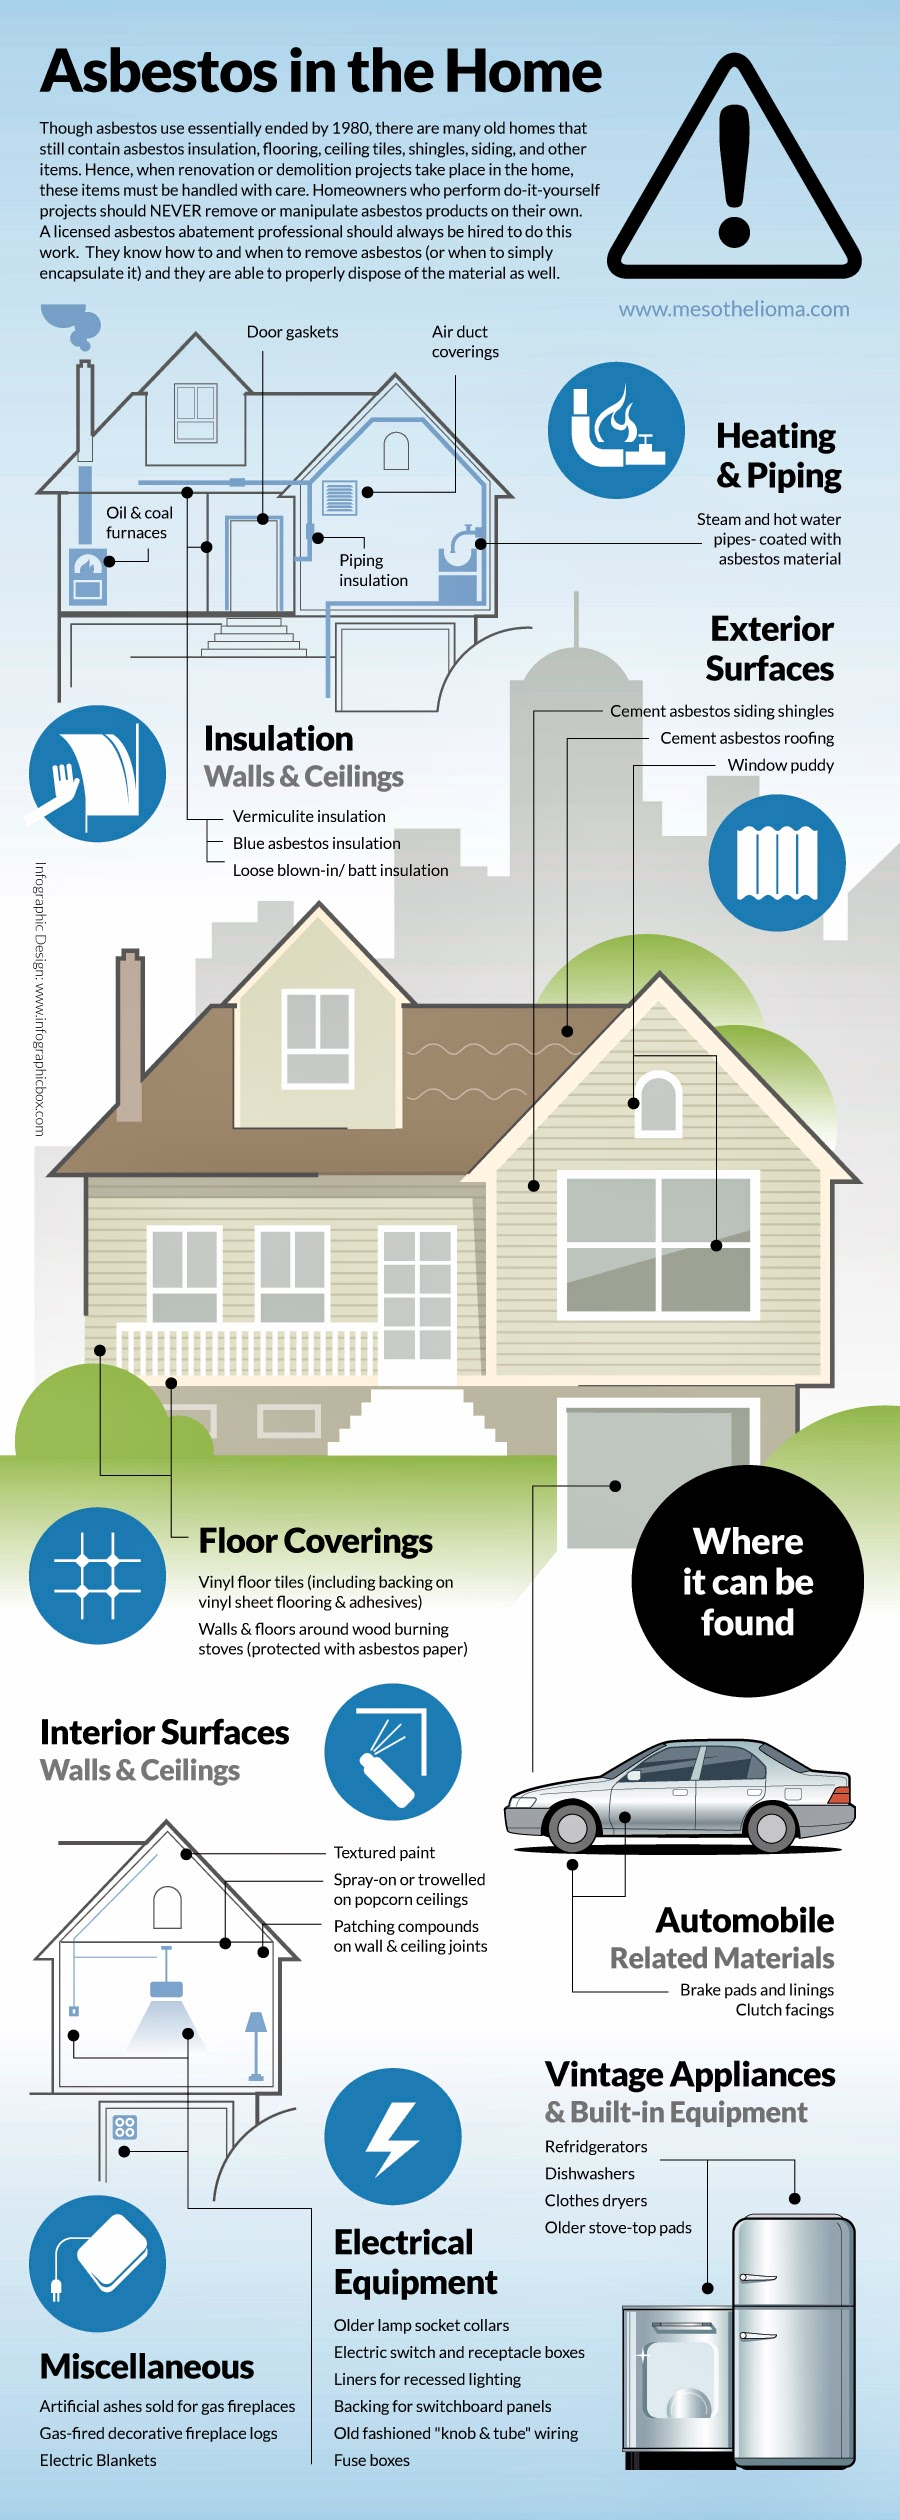 Asbestos in the Home, infographic by Boris Benko